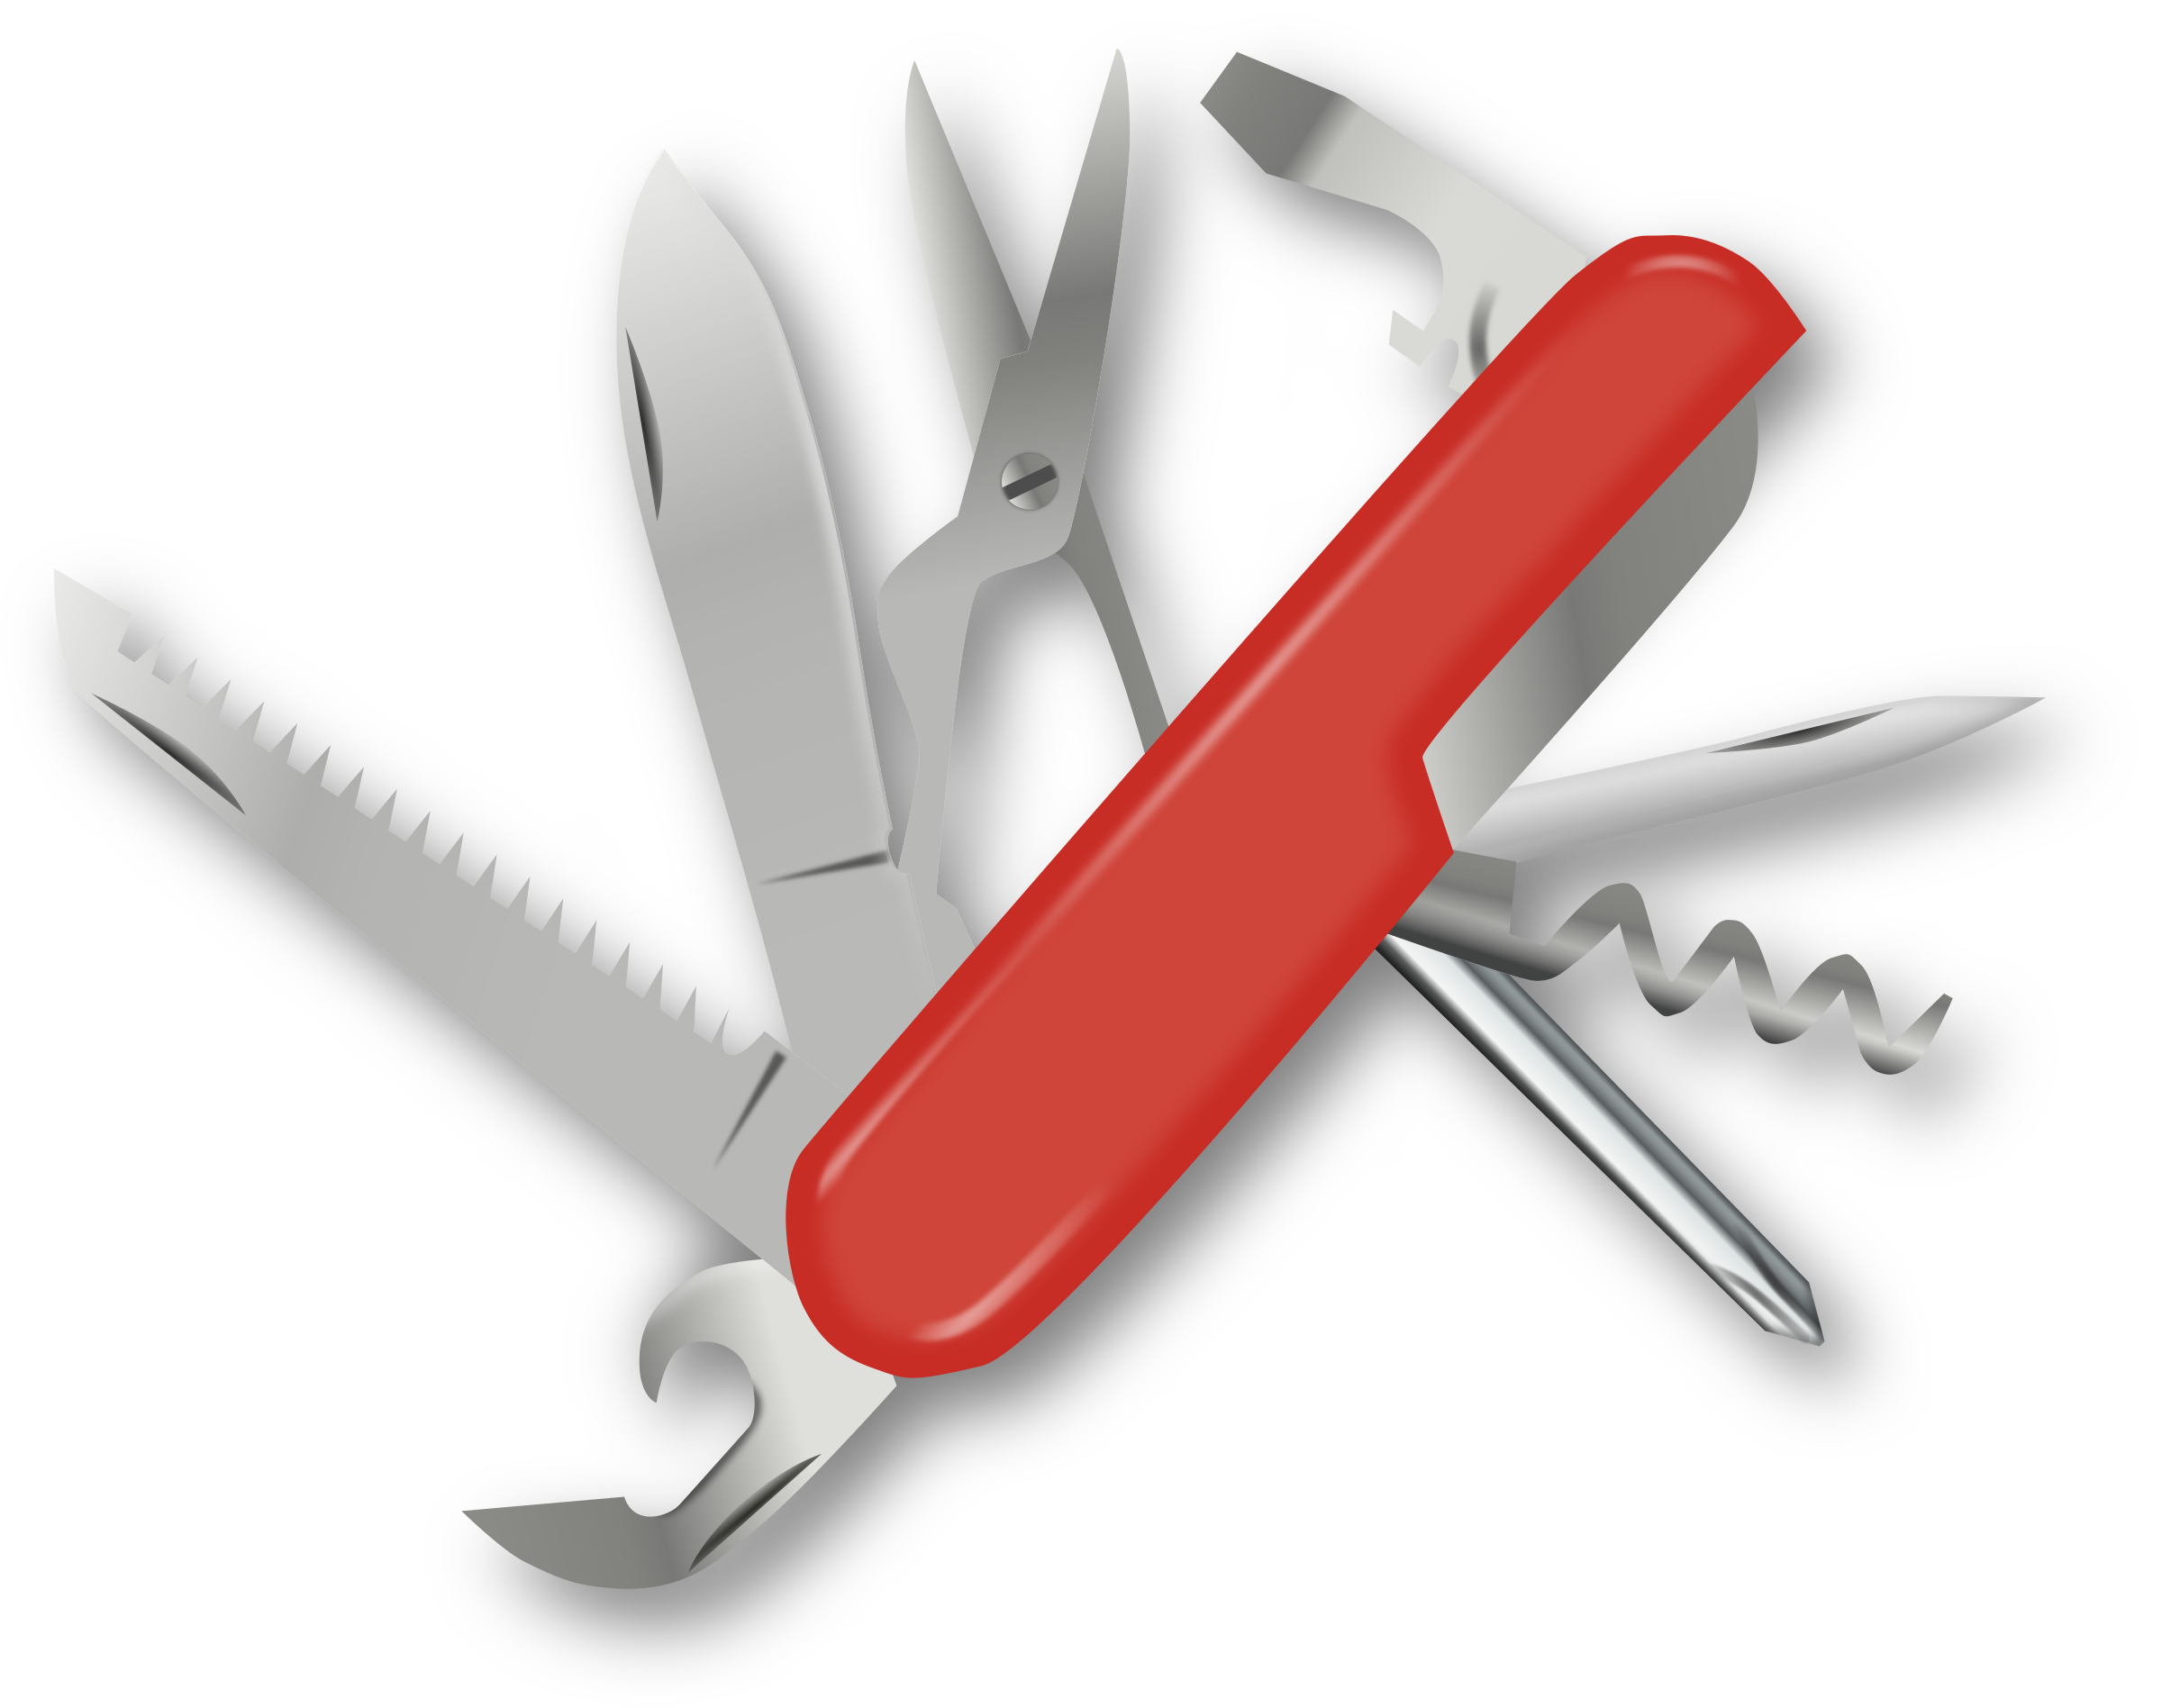 clip library Big image png. Swiss army knife clipart